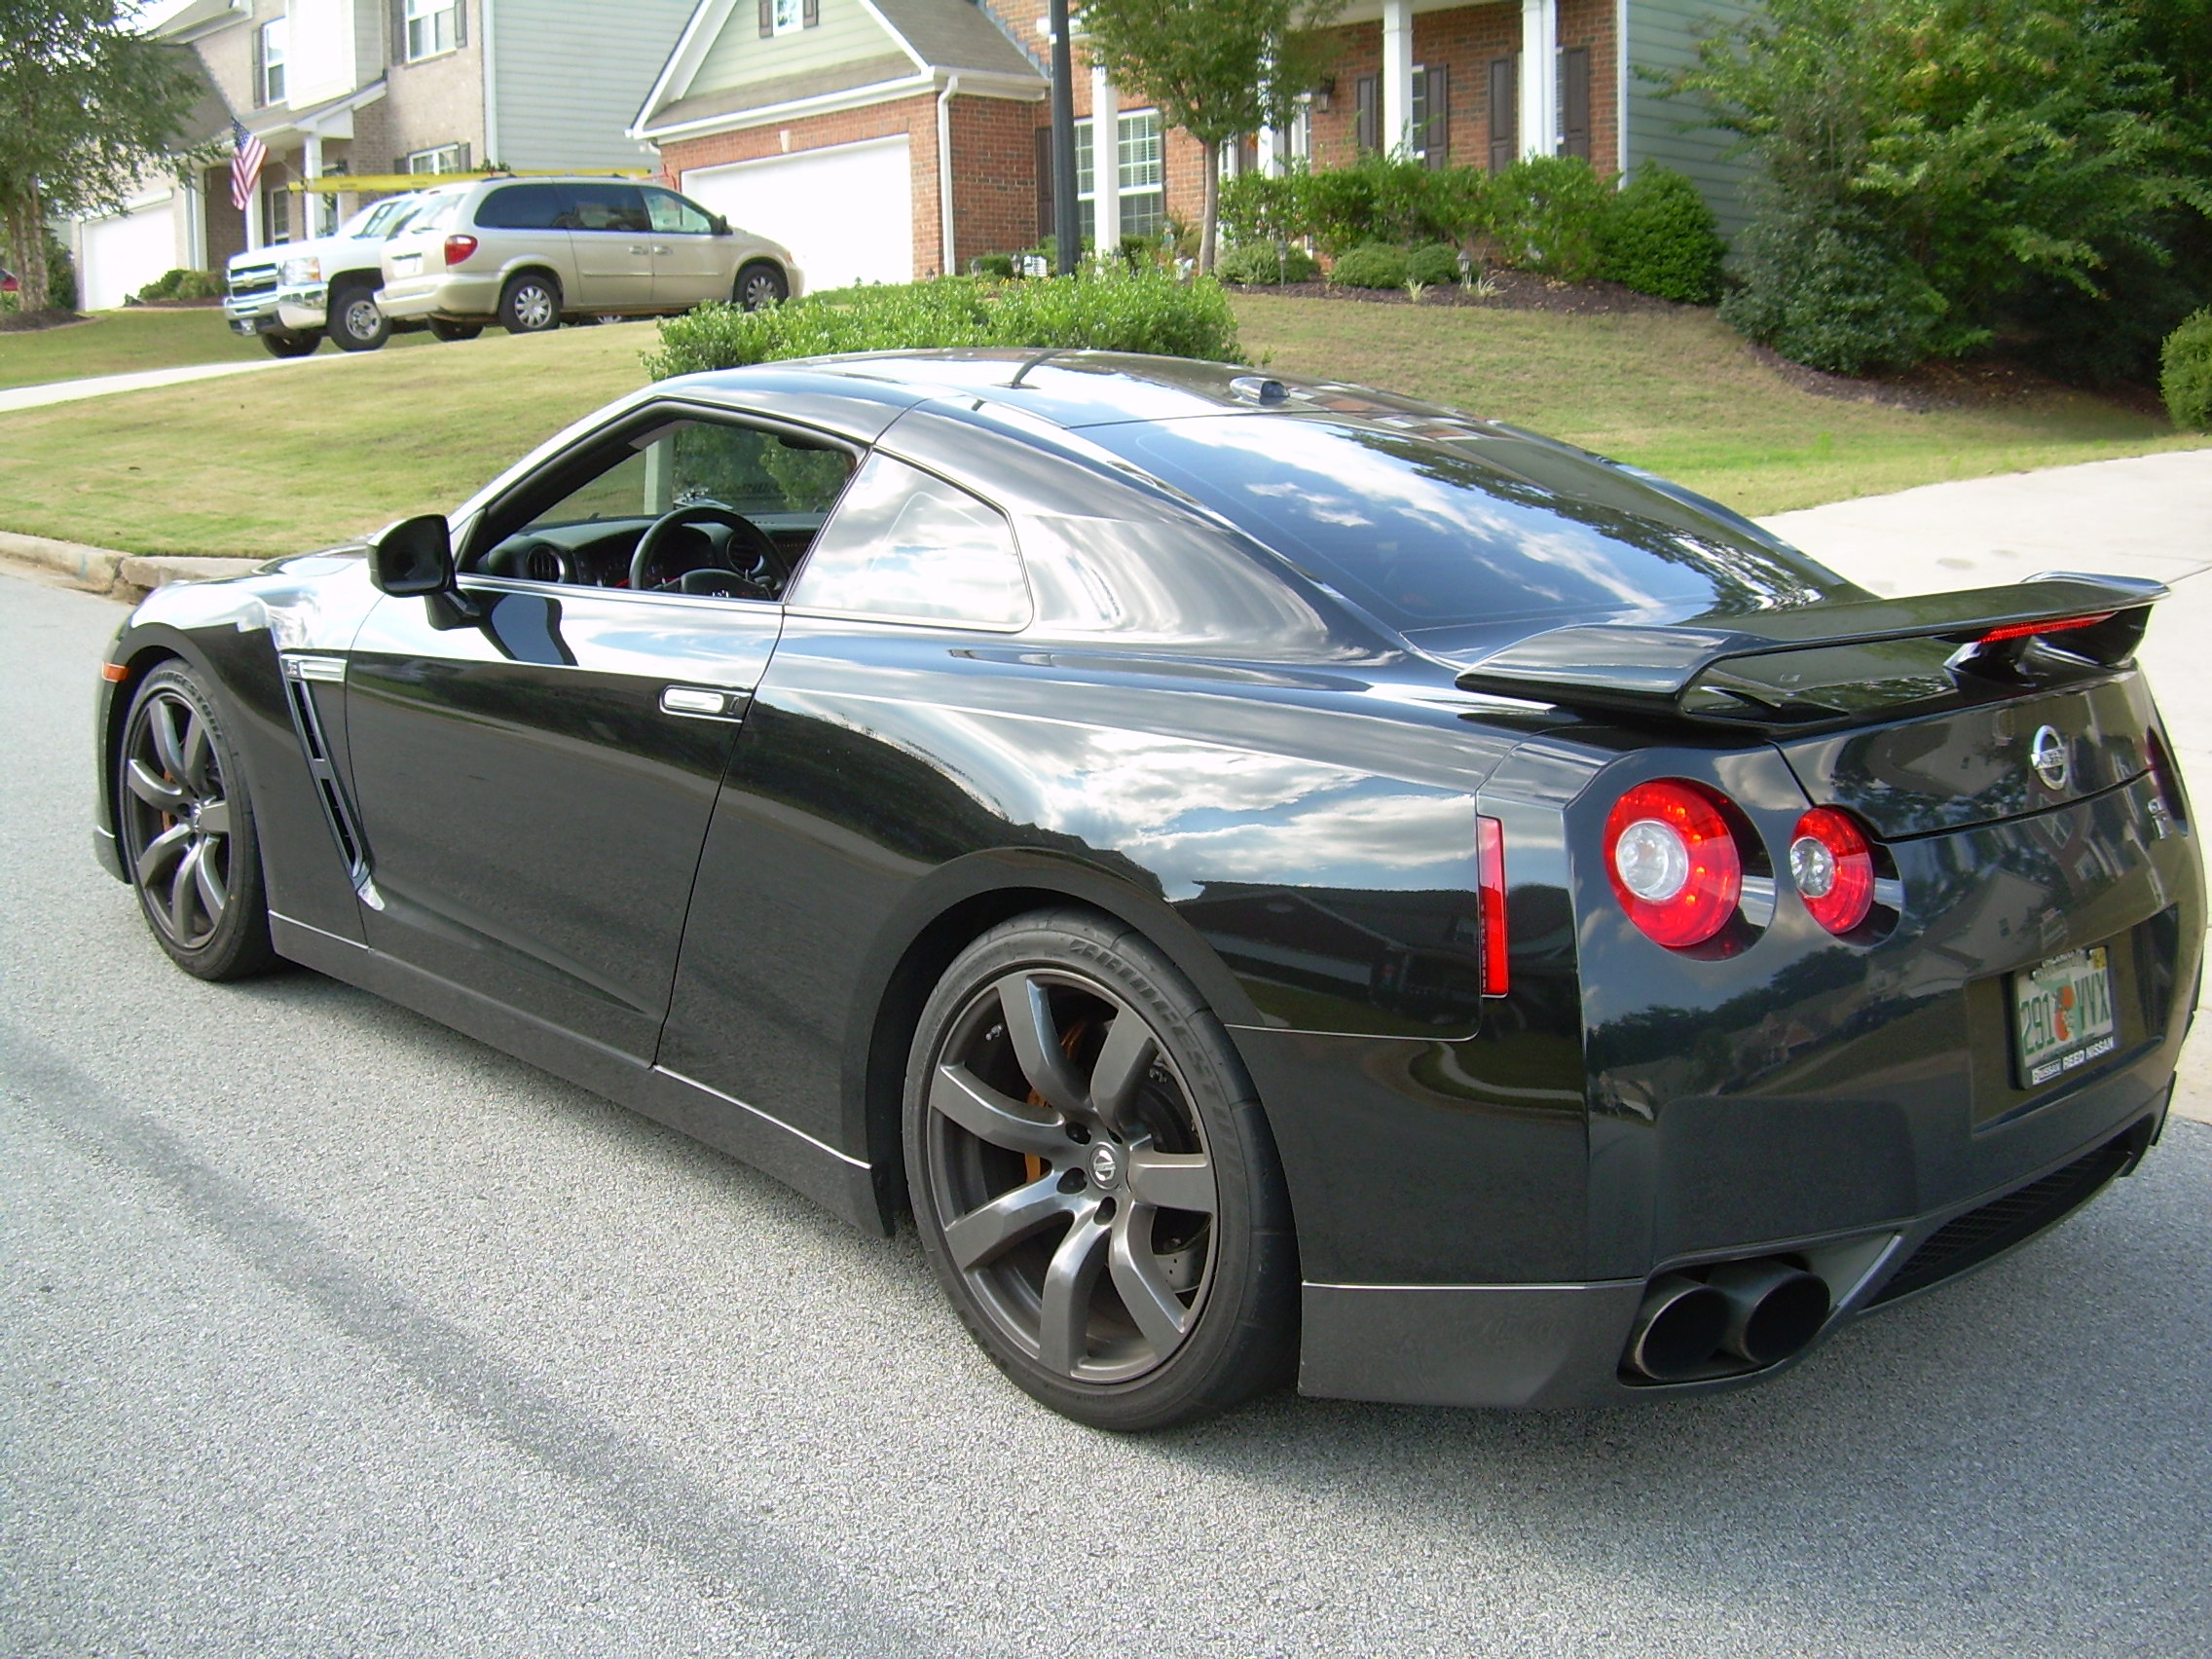 Cars we actually own in real life - Page 10 11201280753_3ae47c641d_o